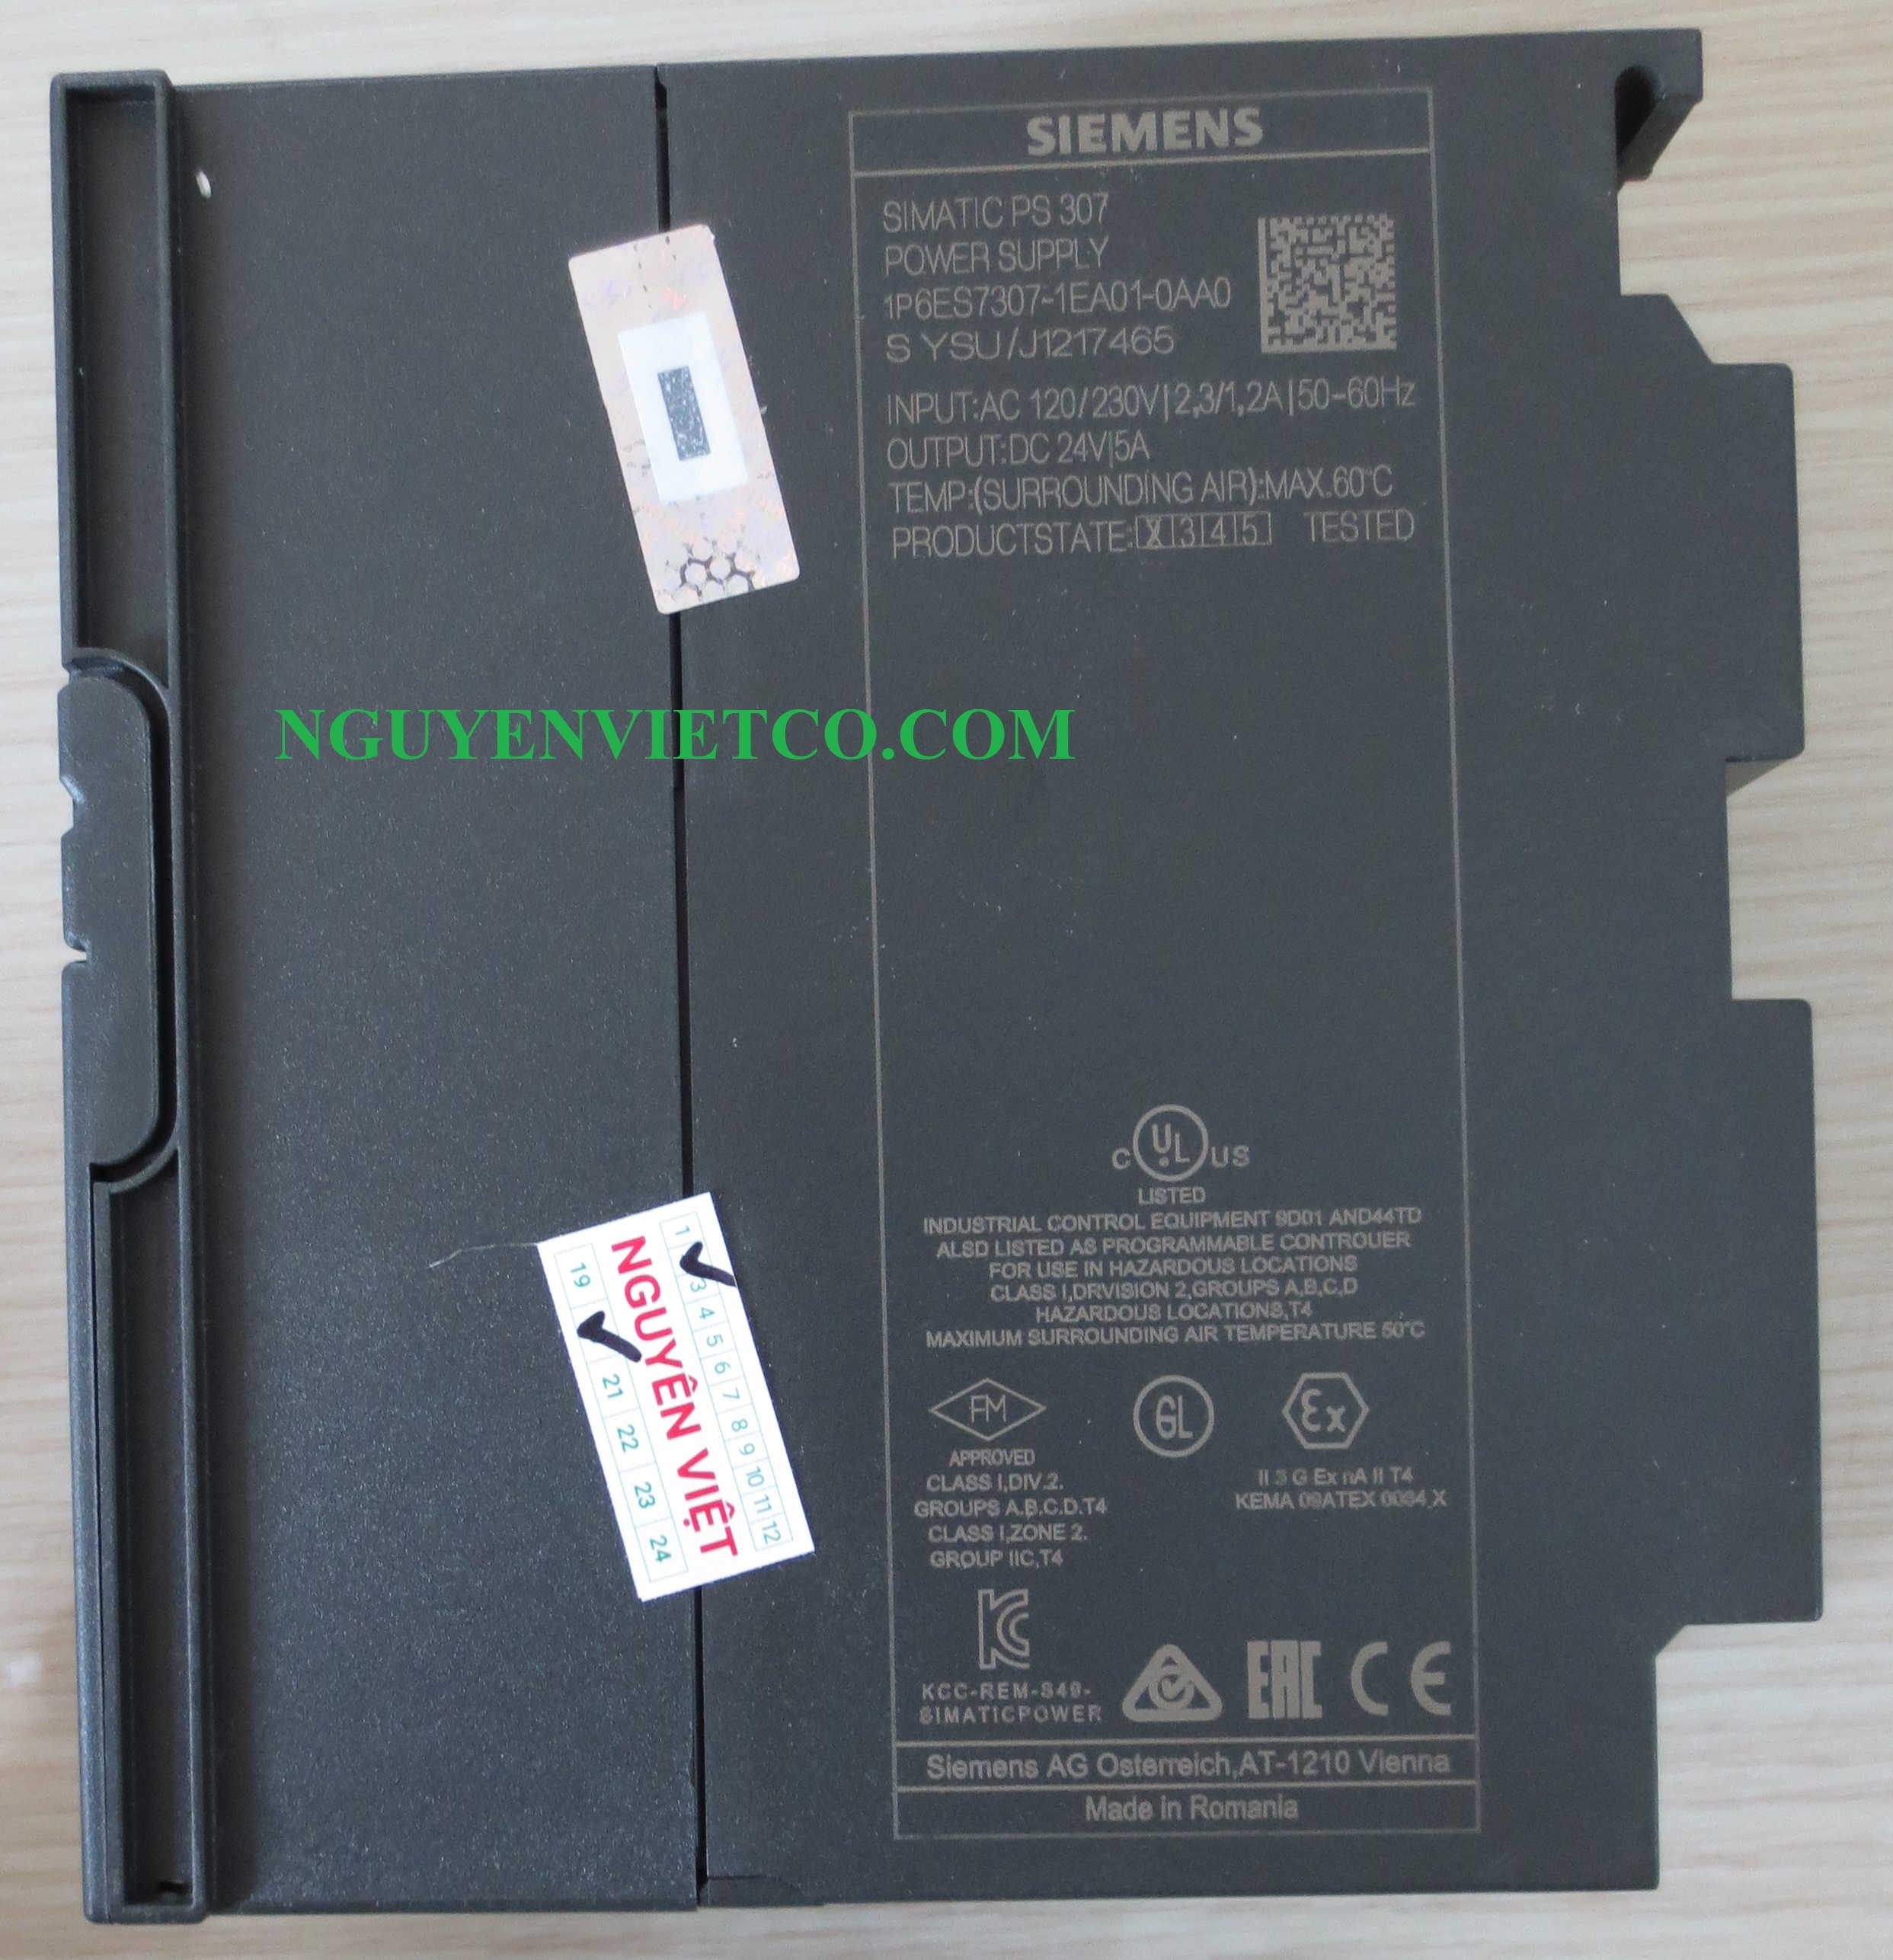 Siemens Power Supply PS 307